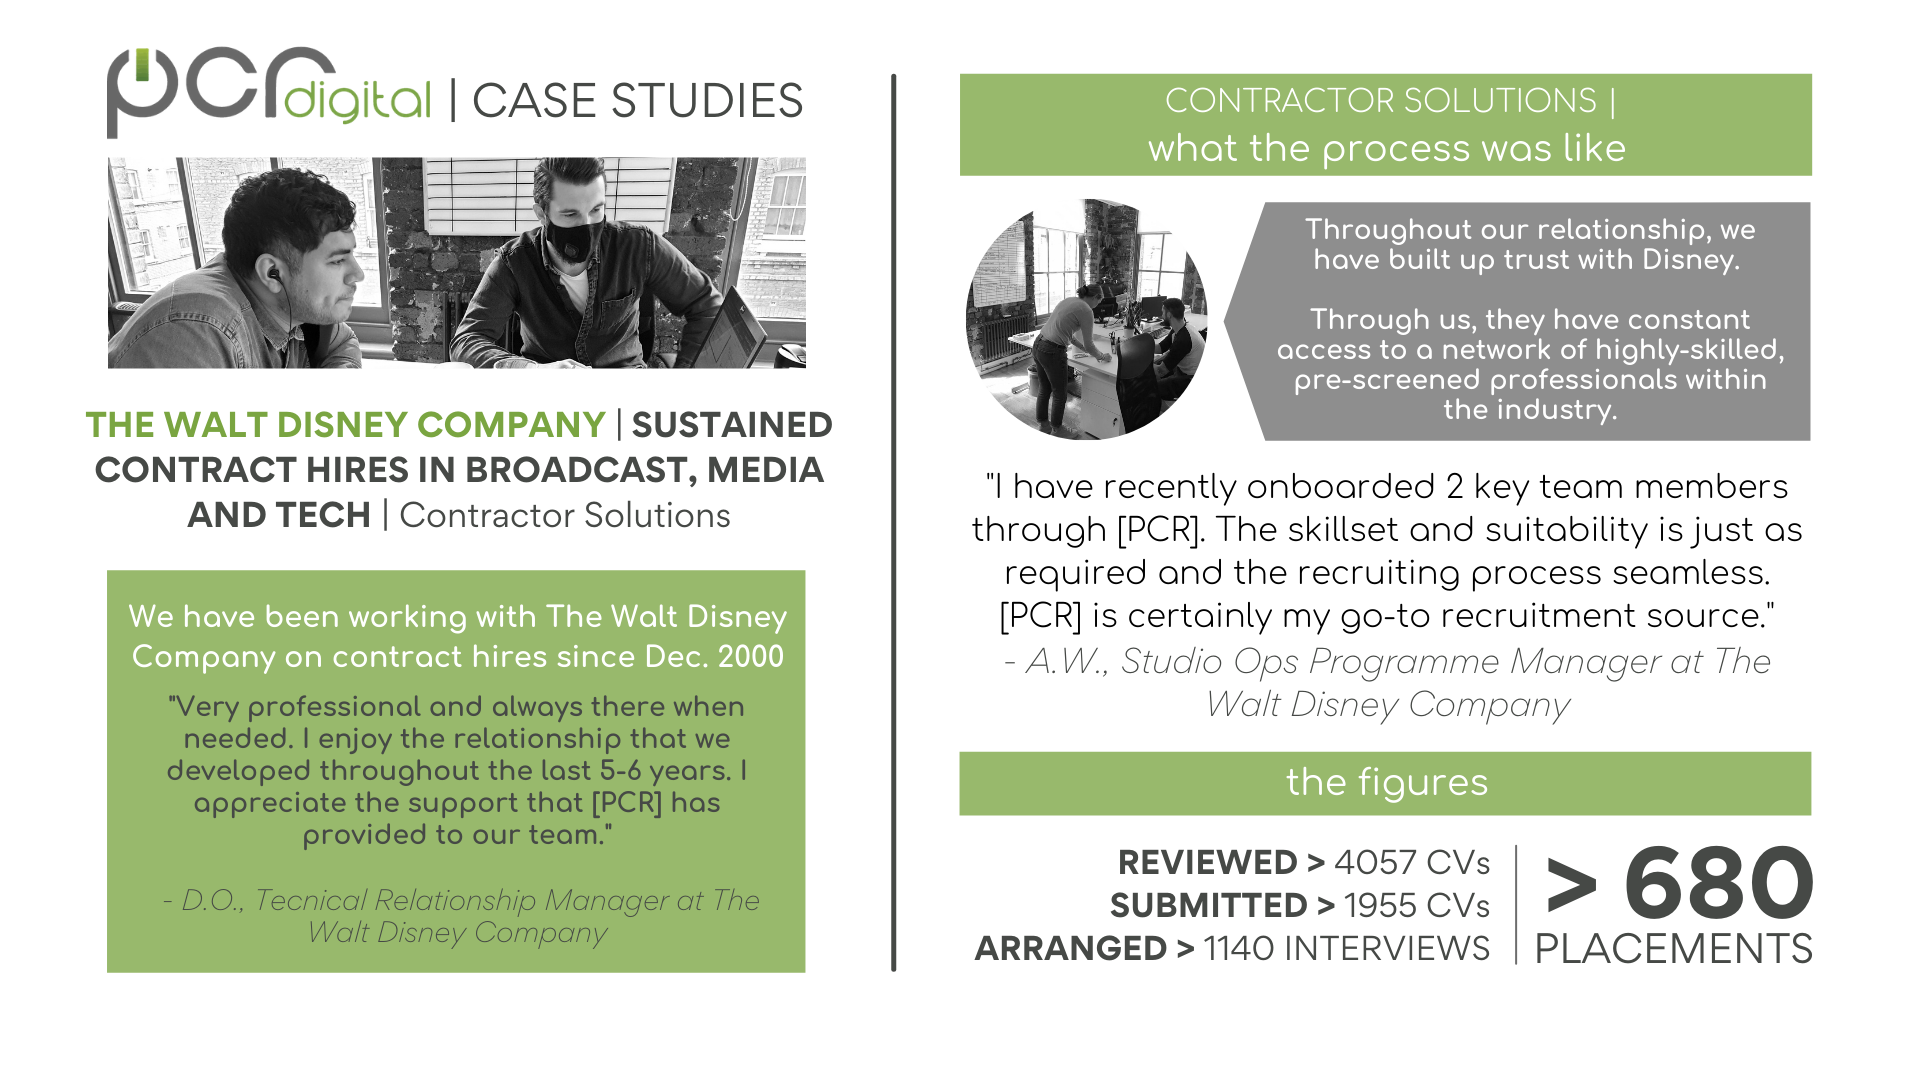 """TESTIMONIAL FROM: THE WALT DISNEY COMPANY 